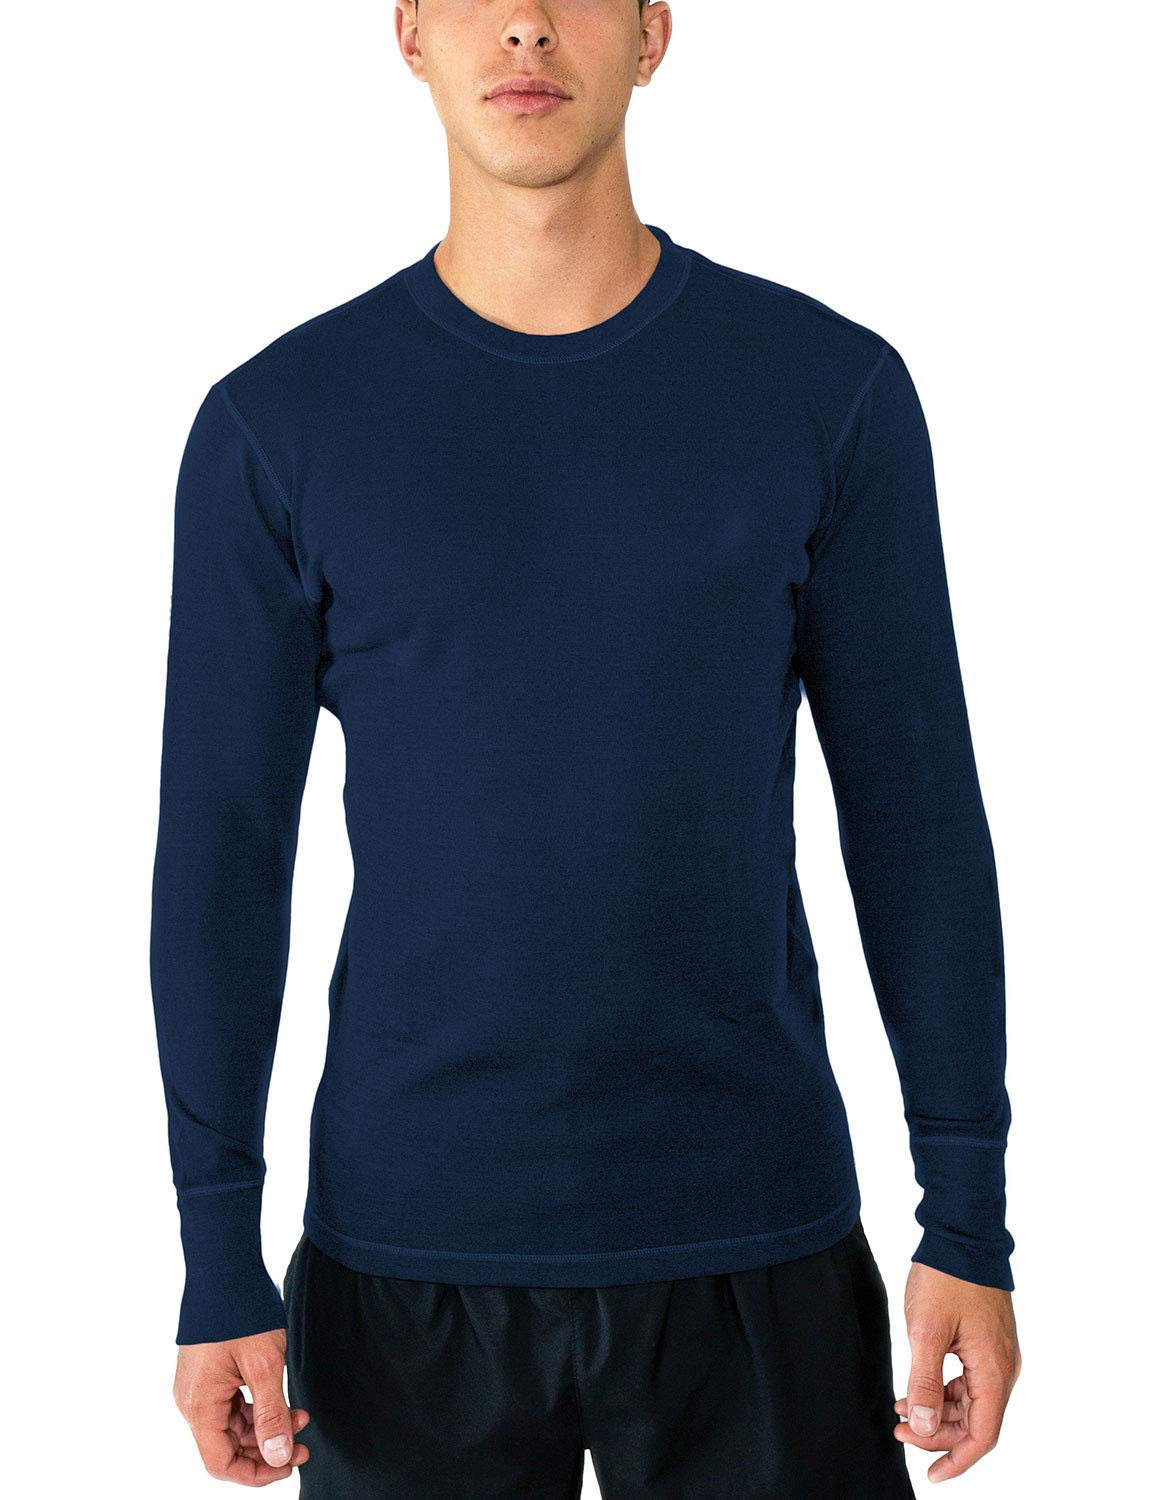 WoolX Explorer - Men's Midweight Merino Wool Baselayer Top - 100% Merino Wool Crew X502